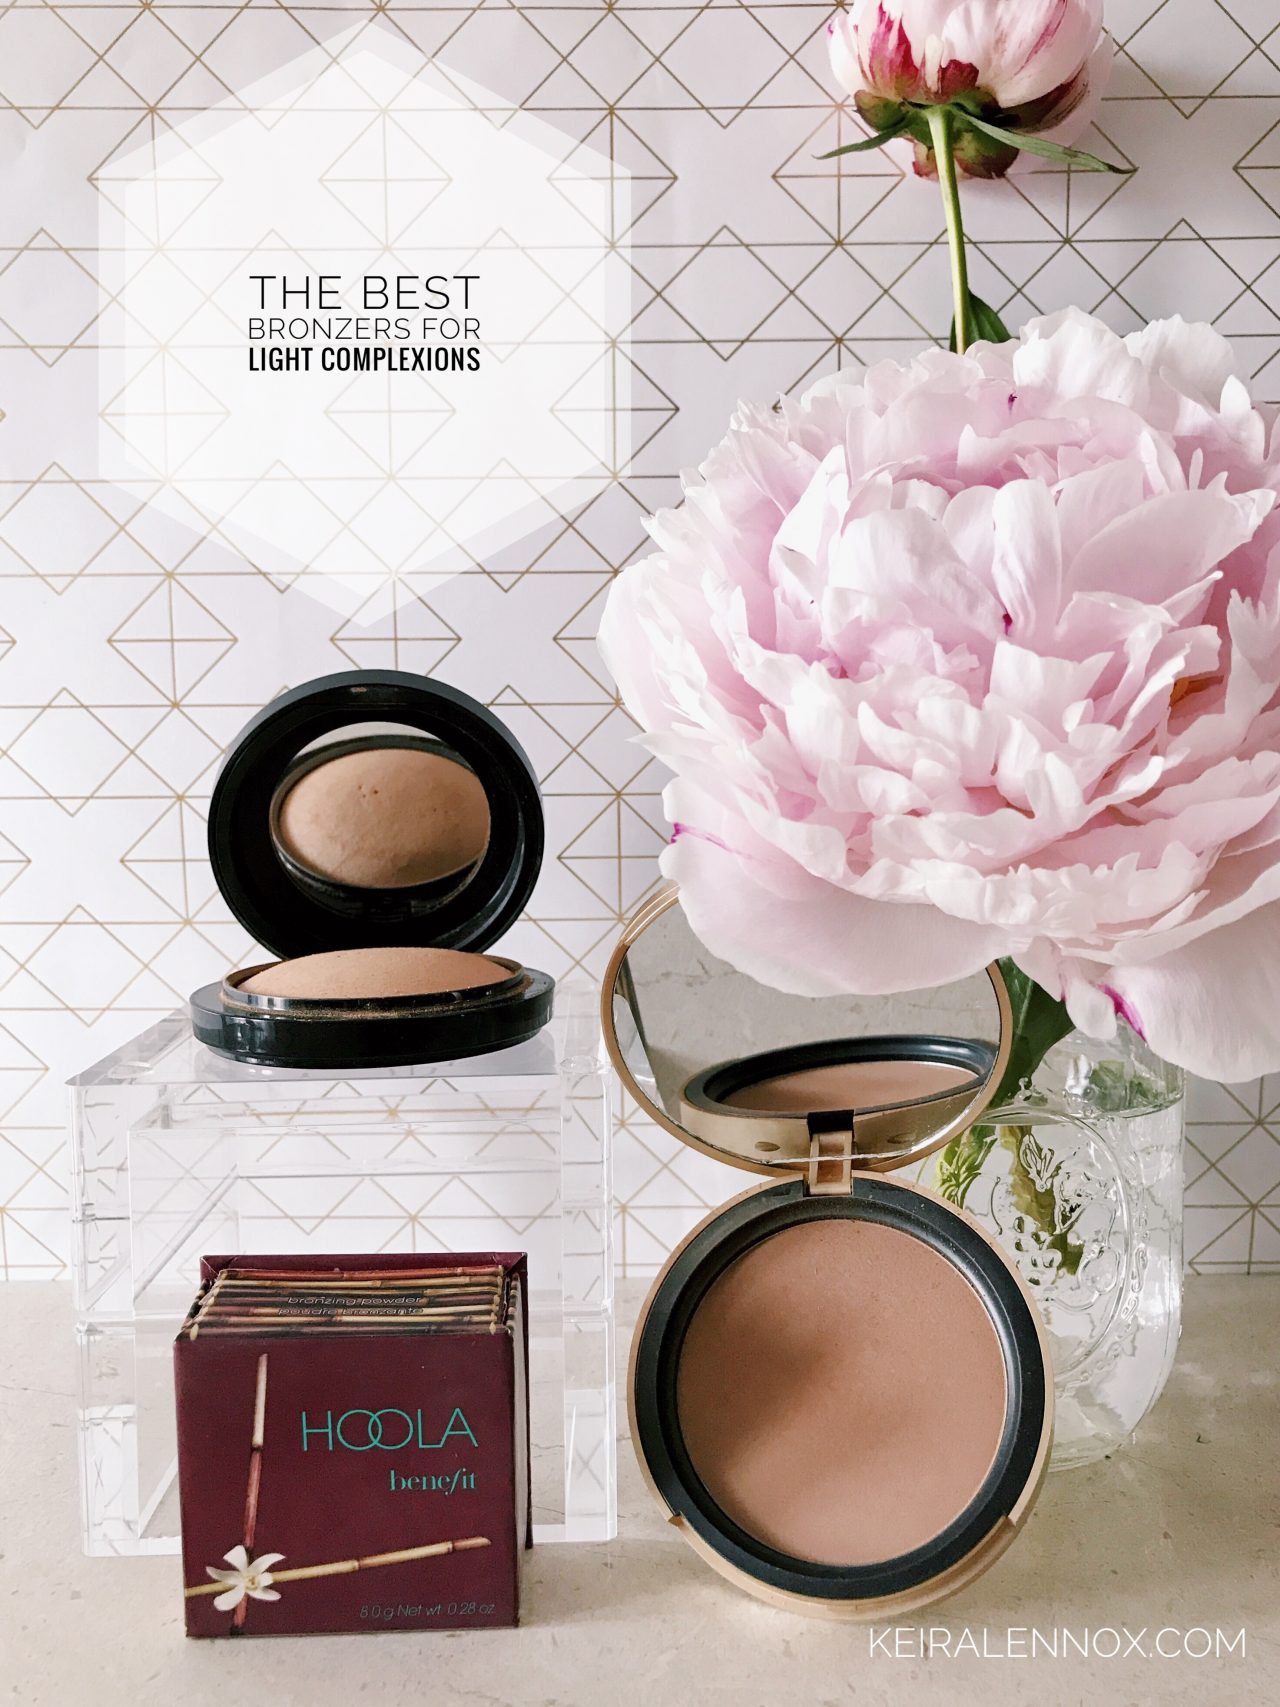 Best Bronzers For Light Skin, Bronzers For Light Complexions, Best Bronzers